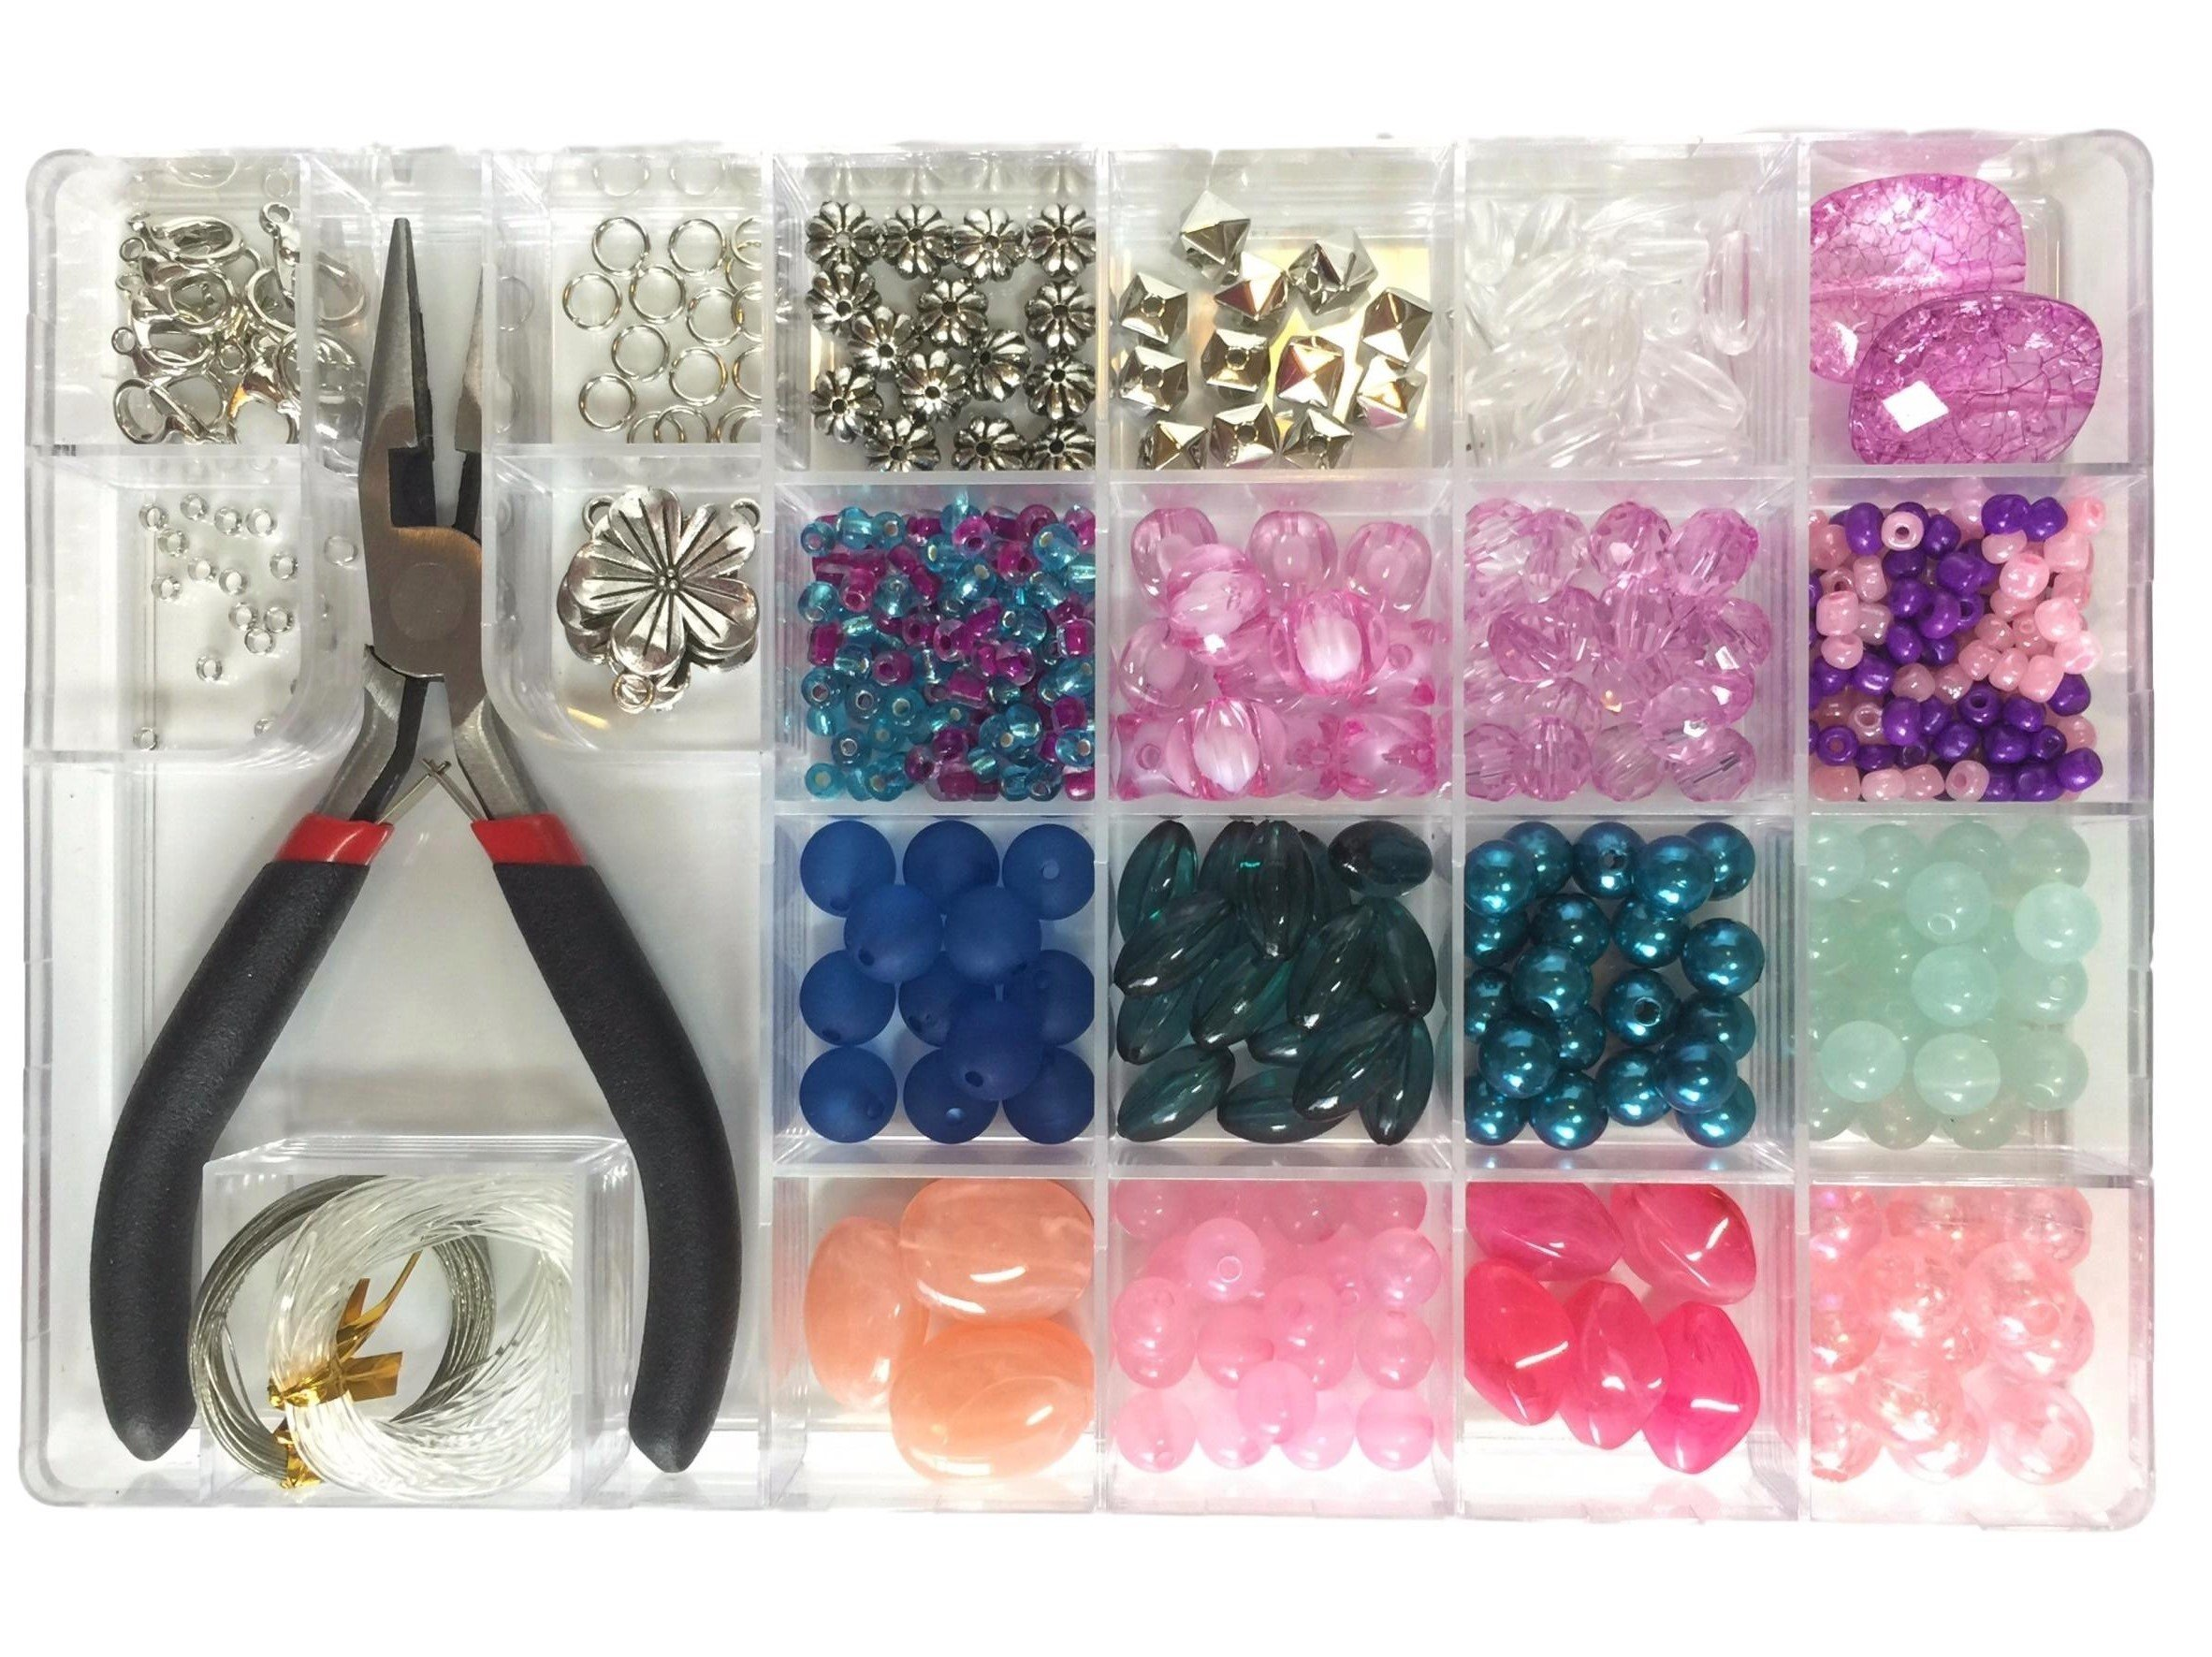 Jewelry Making Kit- Everything Included it This Beginners Jewelry kit. Girls and Teens Will Love Exploring Their Creativity! Directions Included with This Fun Girl's Bead kit. by Flying K